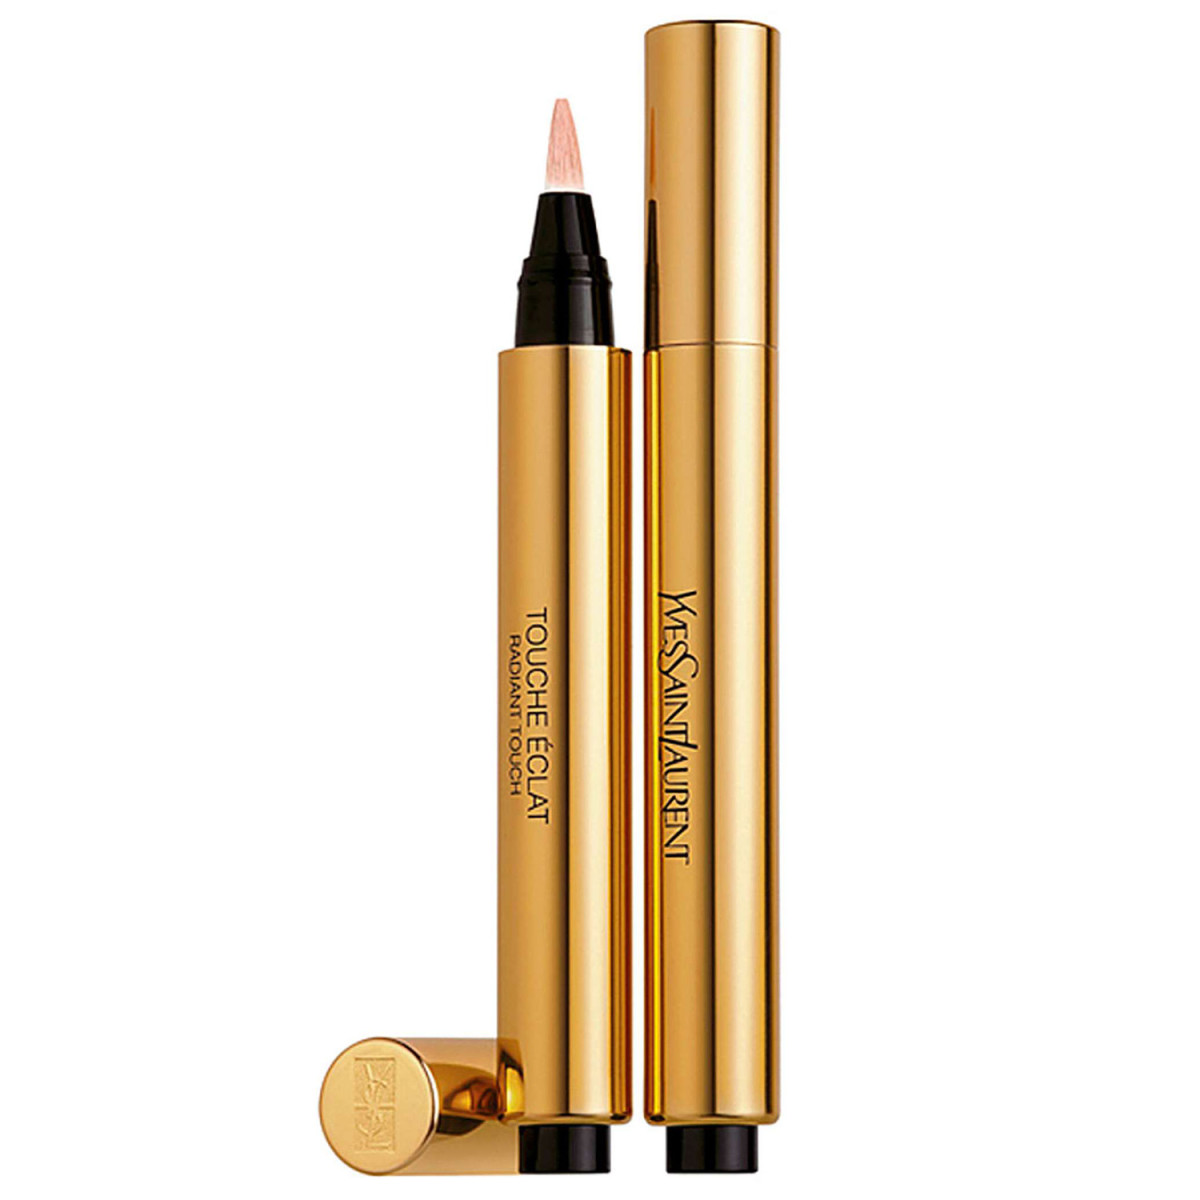 Yves Saint Laurent Touch Eclat Radiant Touch